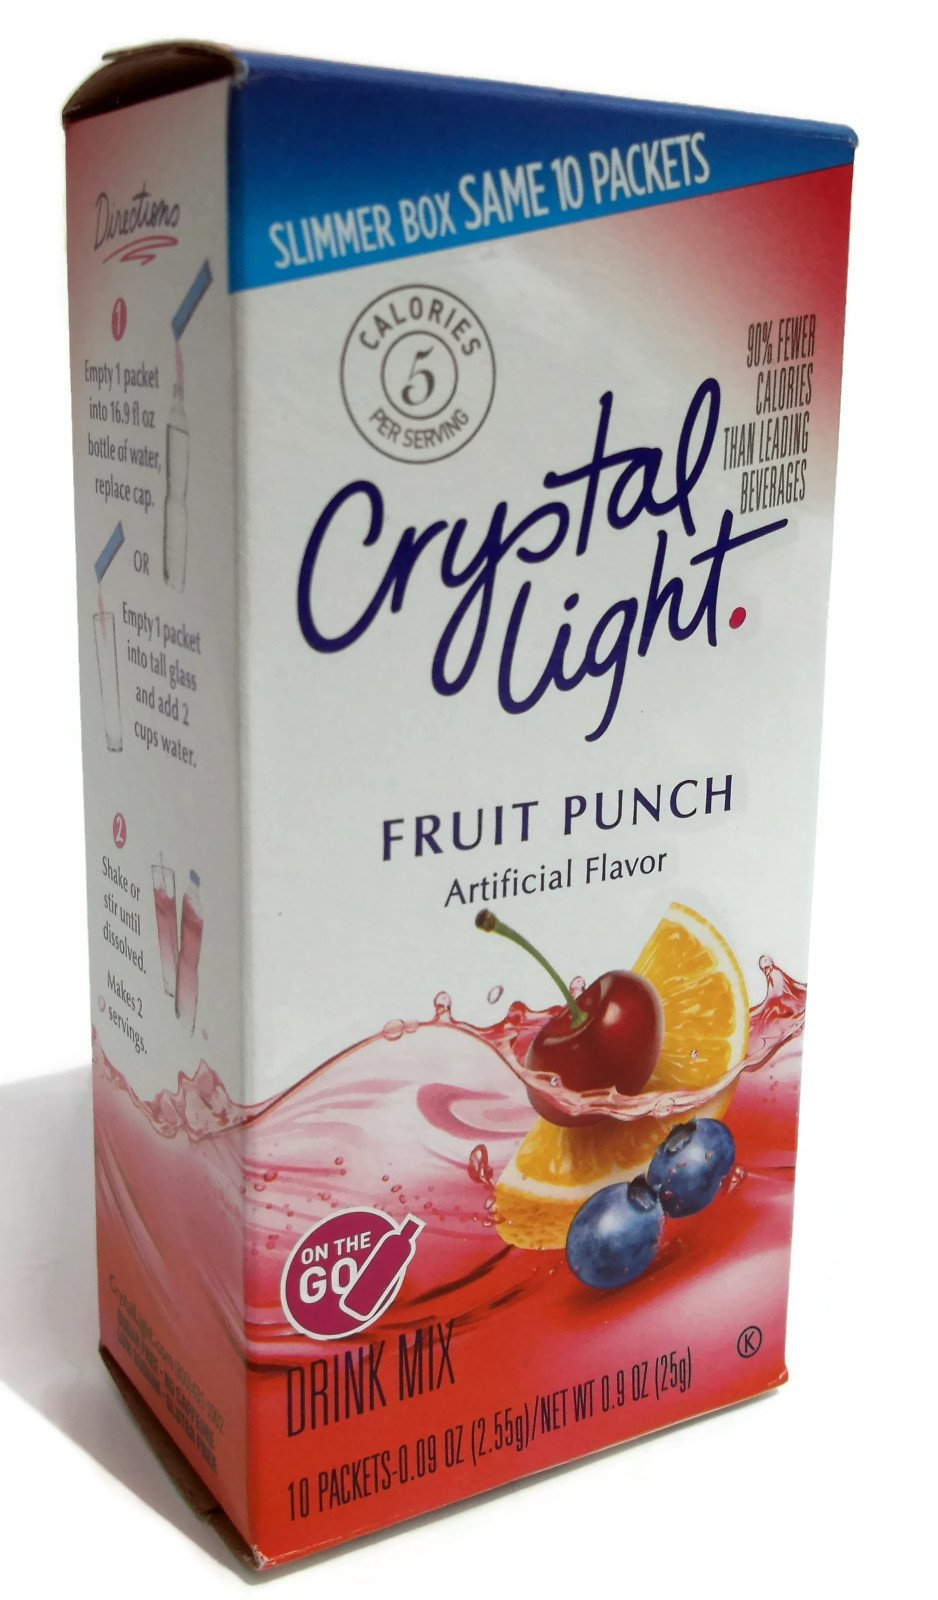 Crystal Light Drink Mix On The Go - 2 Boxes, 10 Sachets Per Box - Add to Glass or Bottle of Water (Fruit Punch)